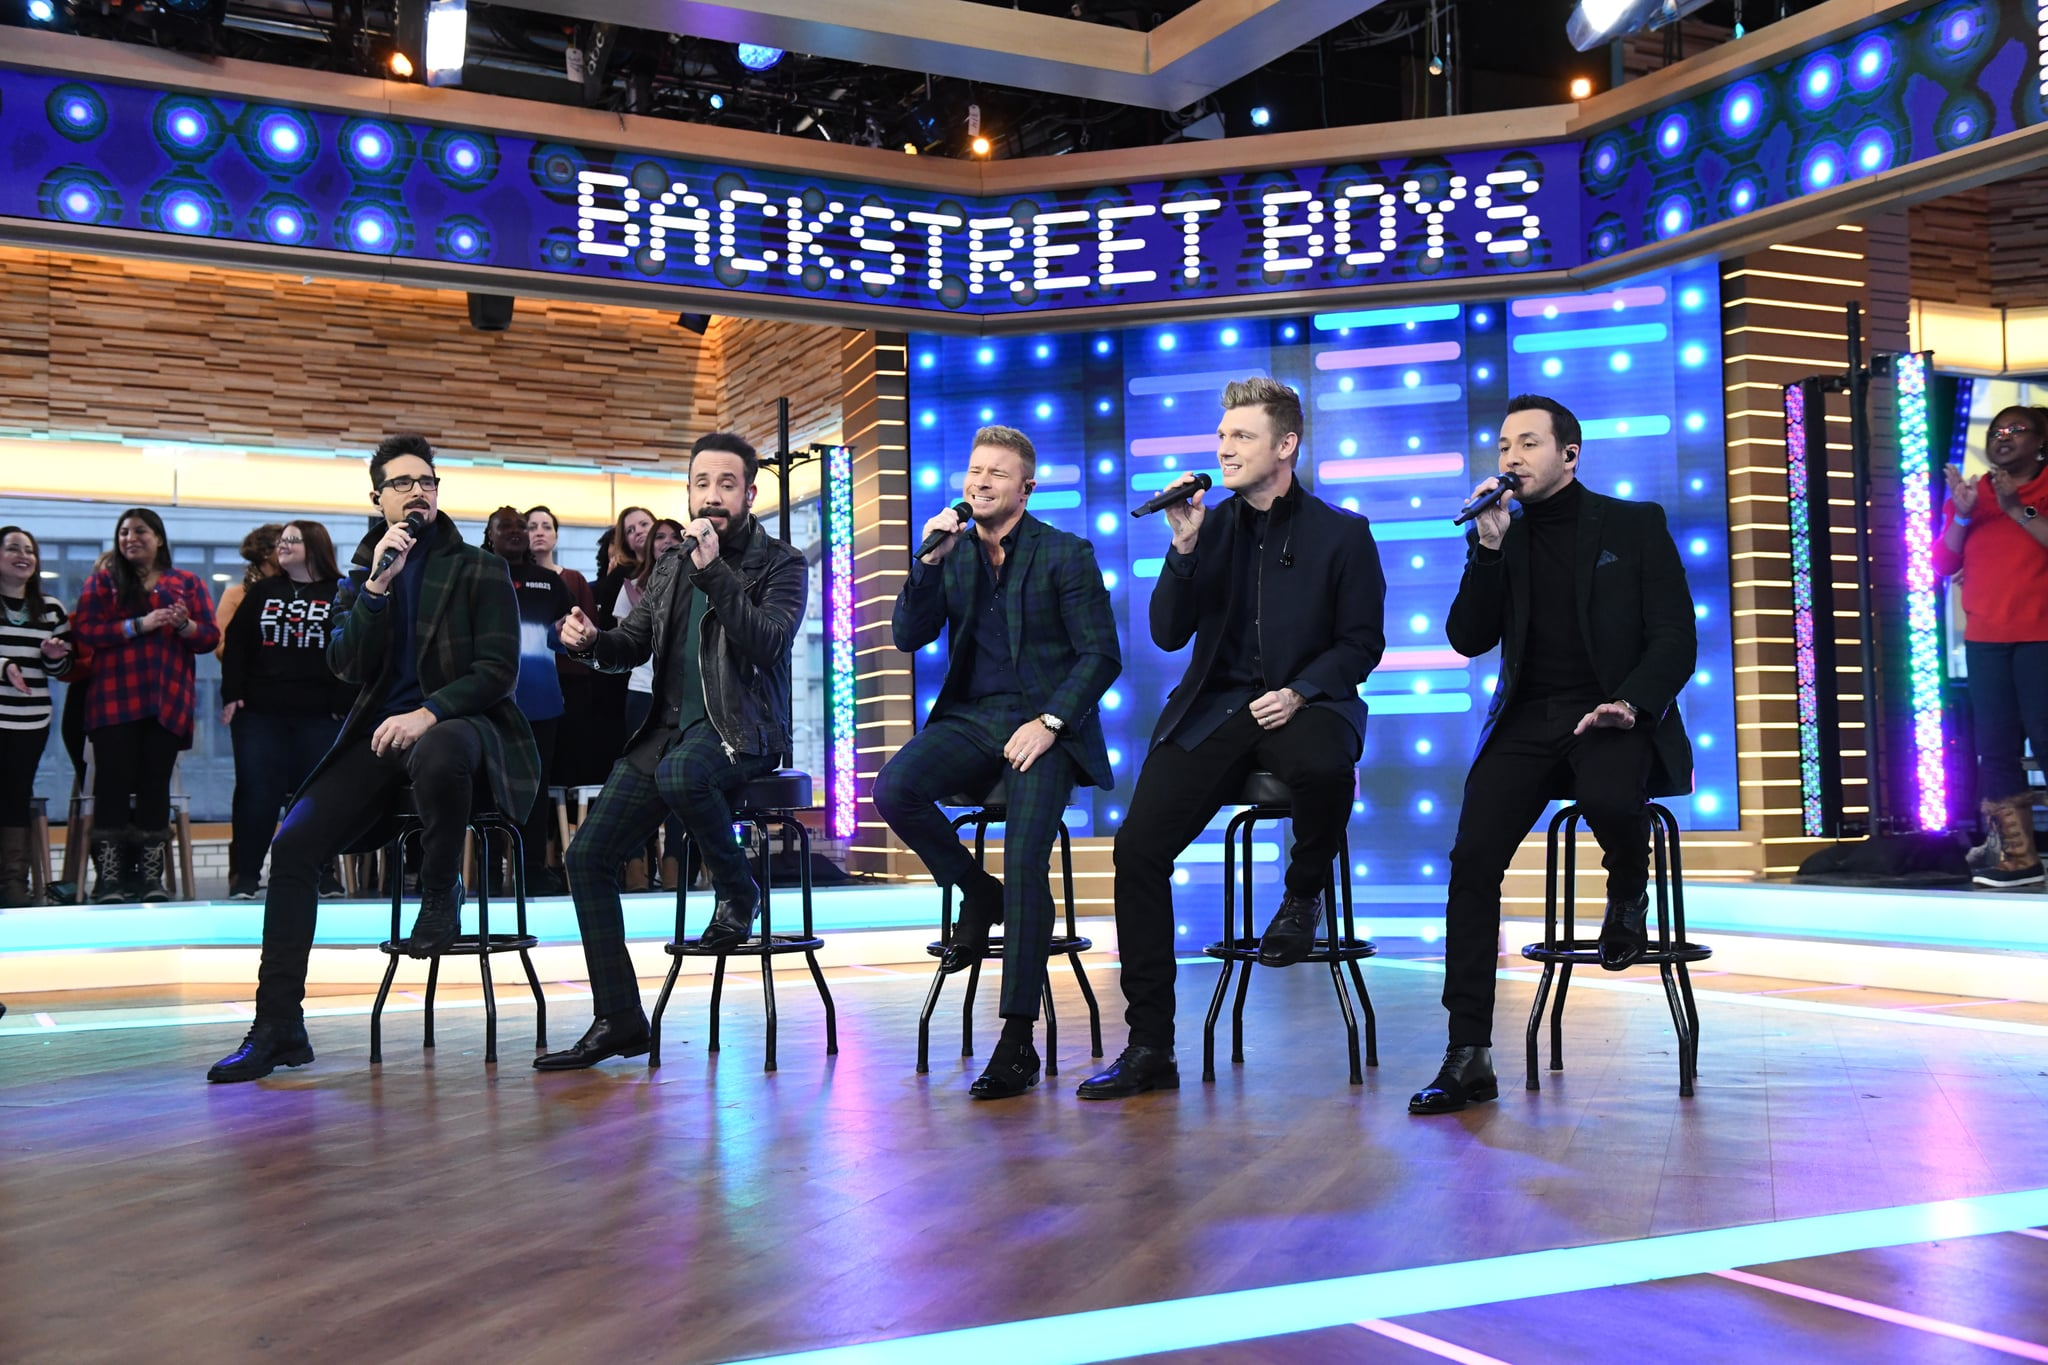 GOOD MORNING AMERICA - The Backstreet Boys are live on